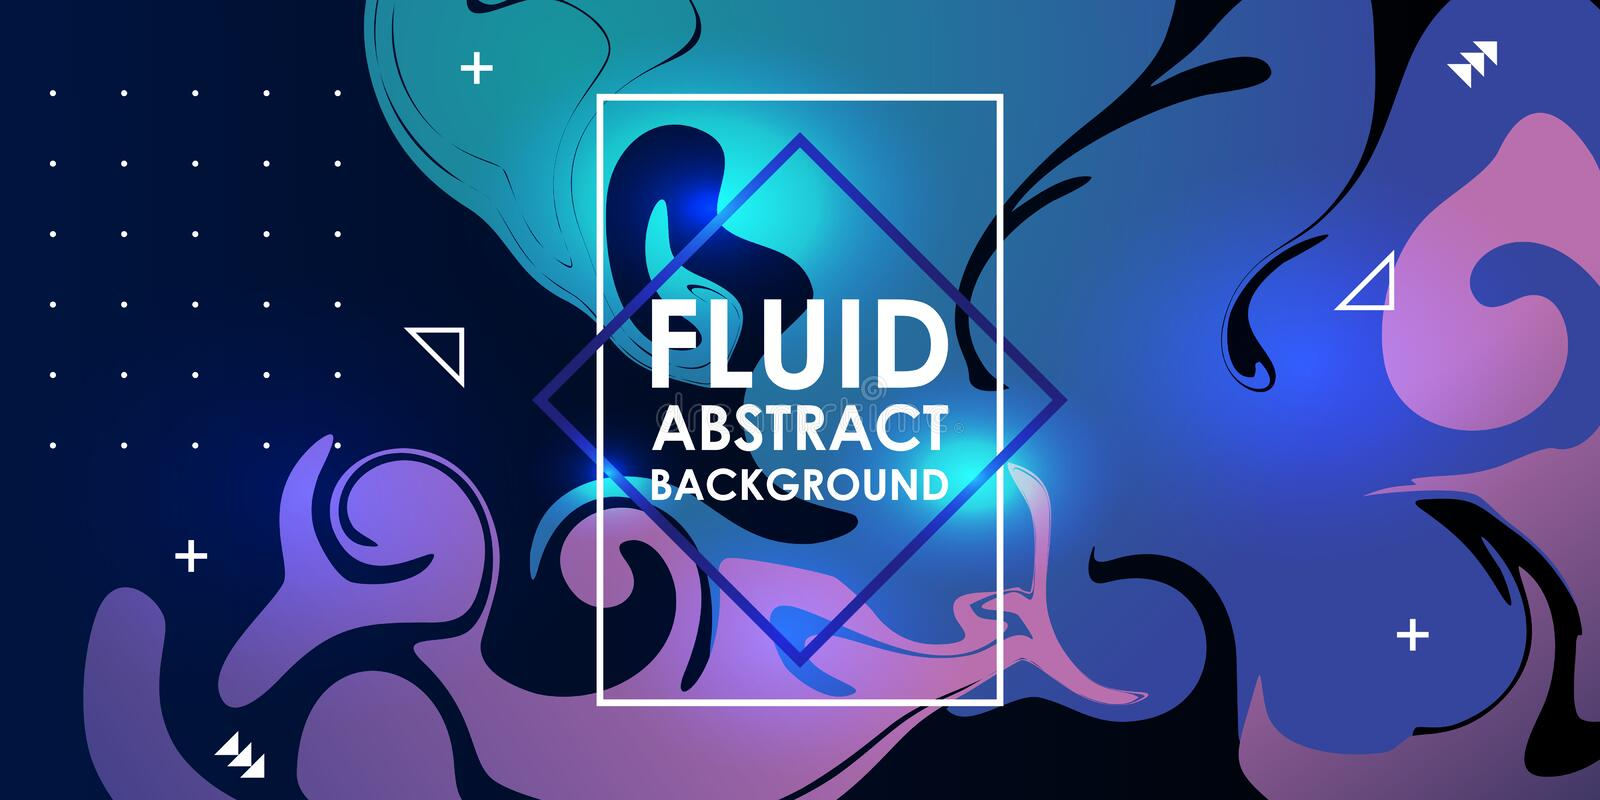 Fluid abstract background trendy neon gradient modern colors vector illustration eps 10 stock illustration